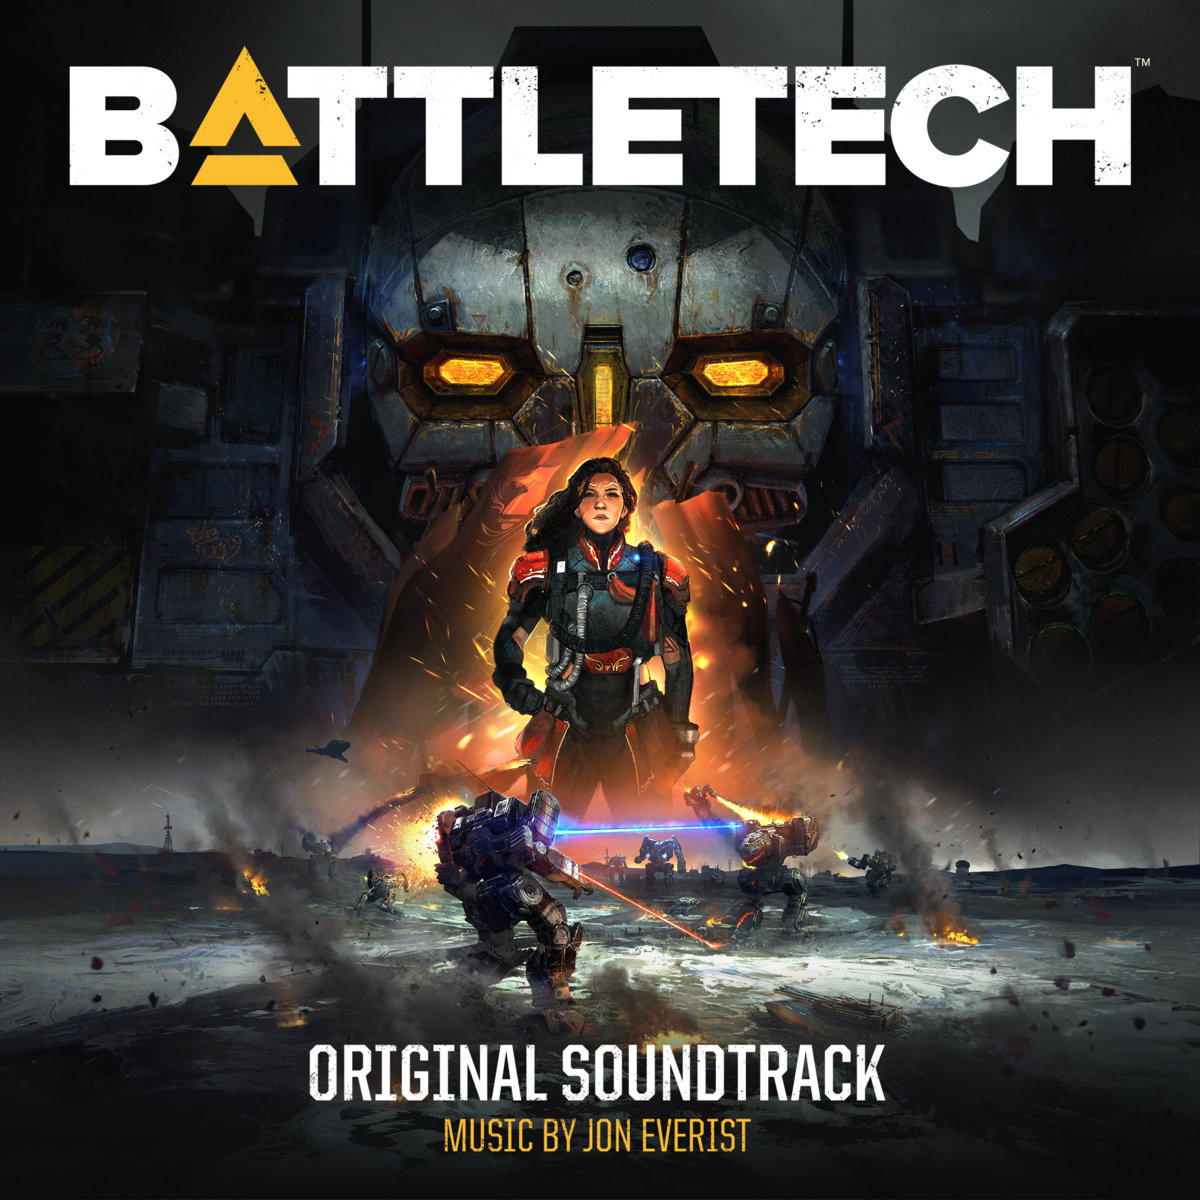 BATTLETECH ORIGINAL SOUNDTRACK A0148503897_10